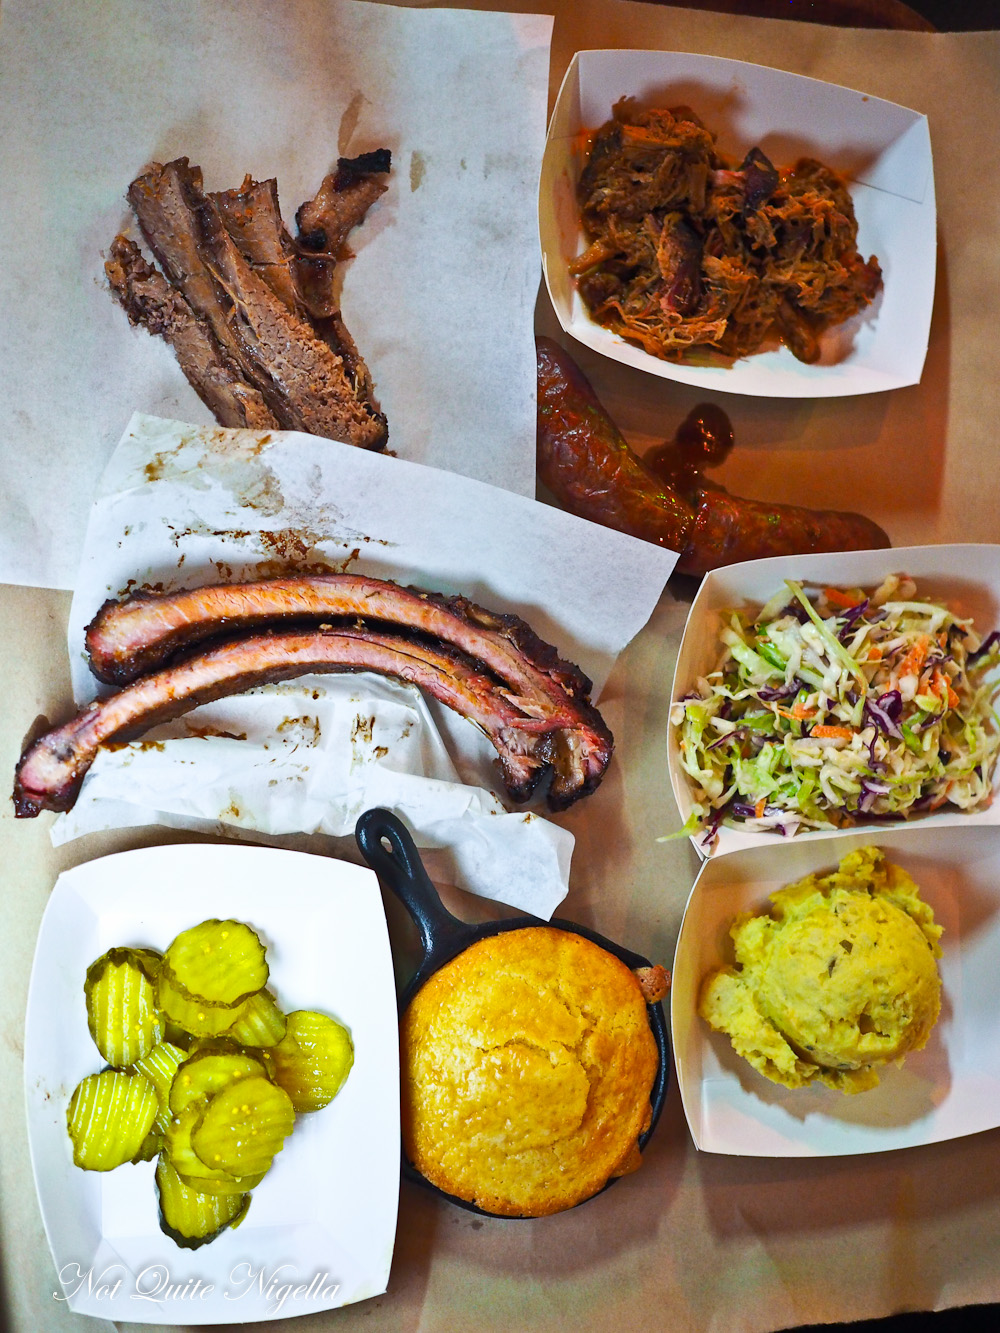 Texan barbecue challenge Sydney